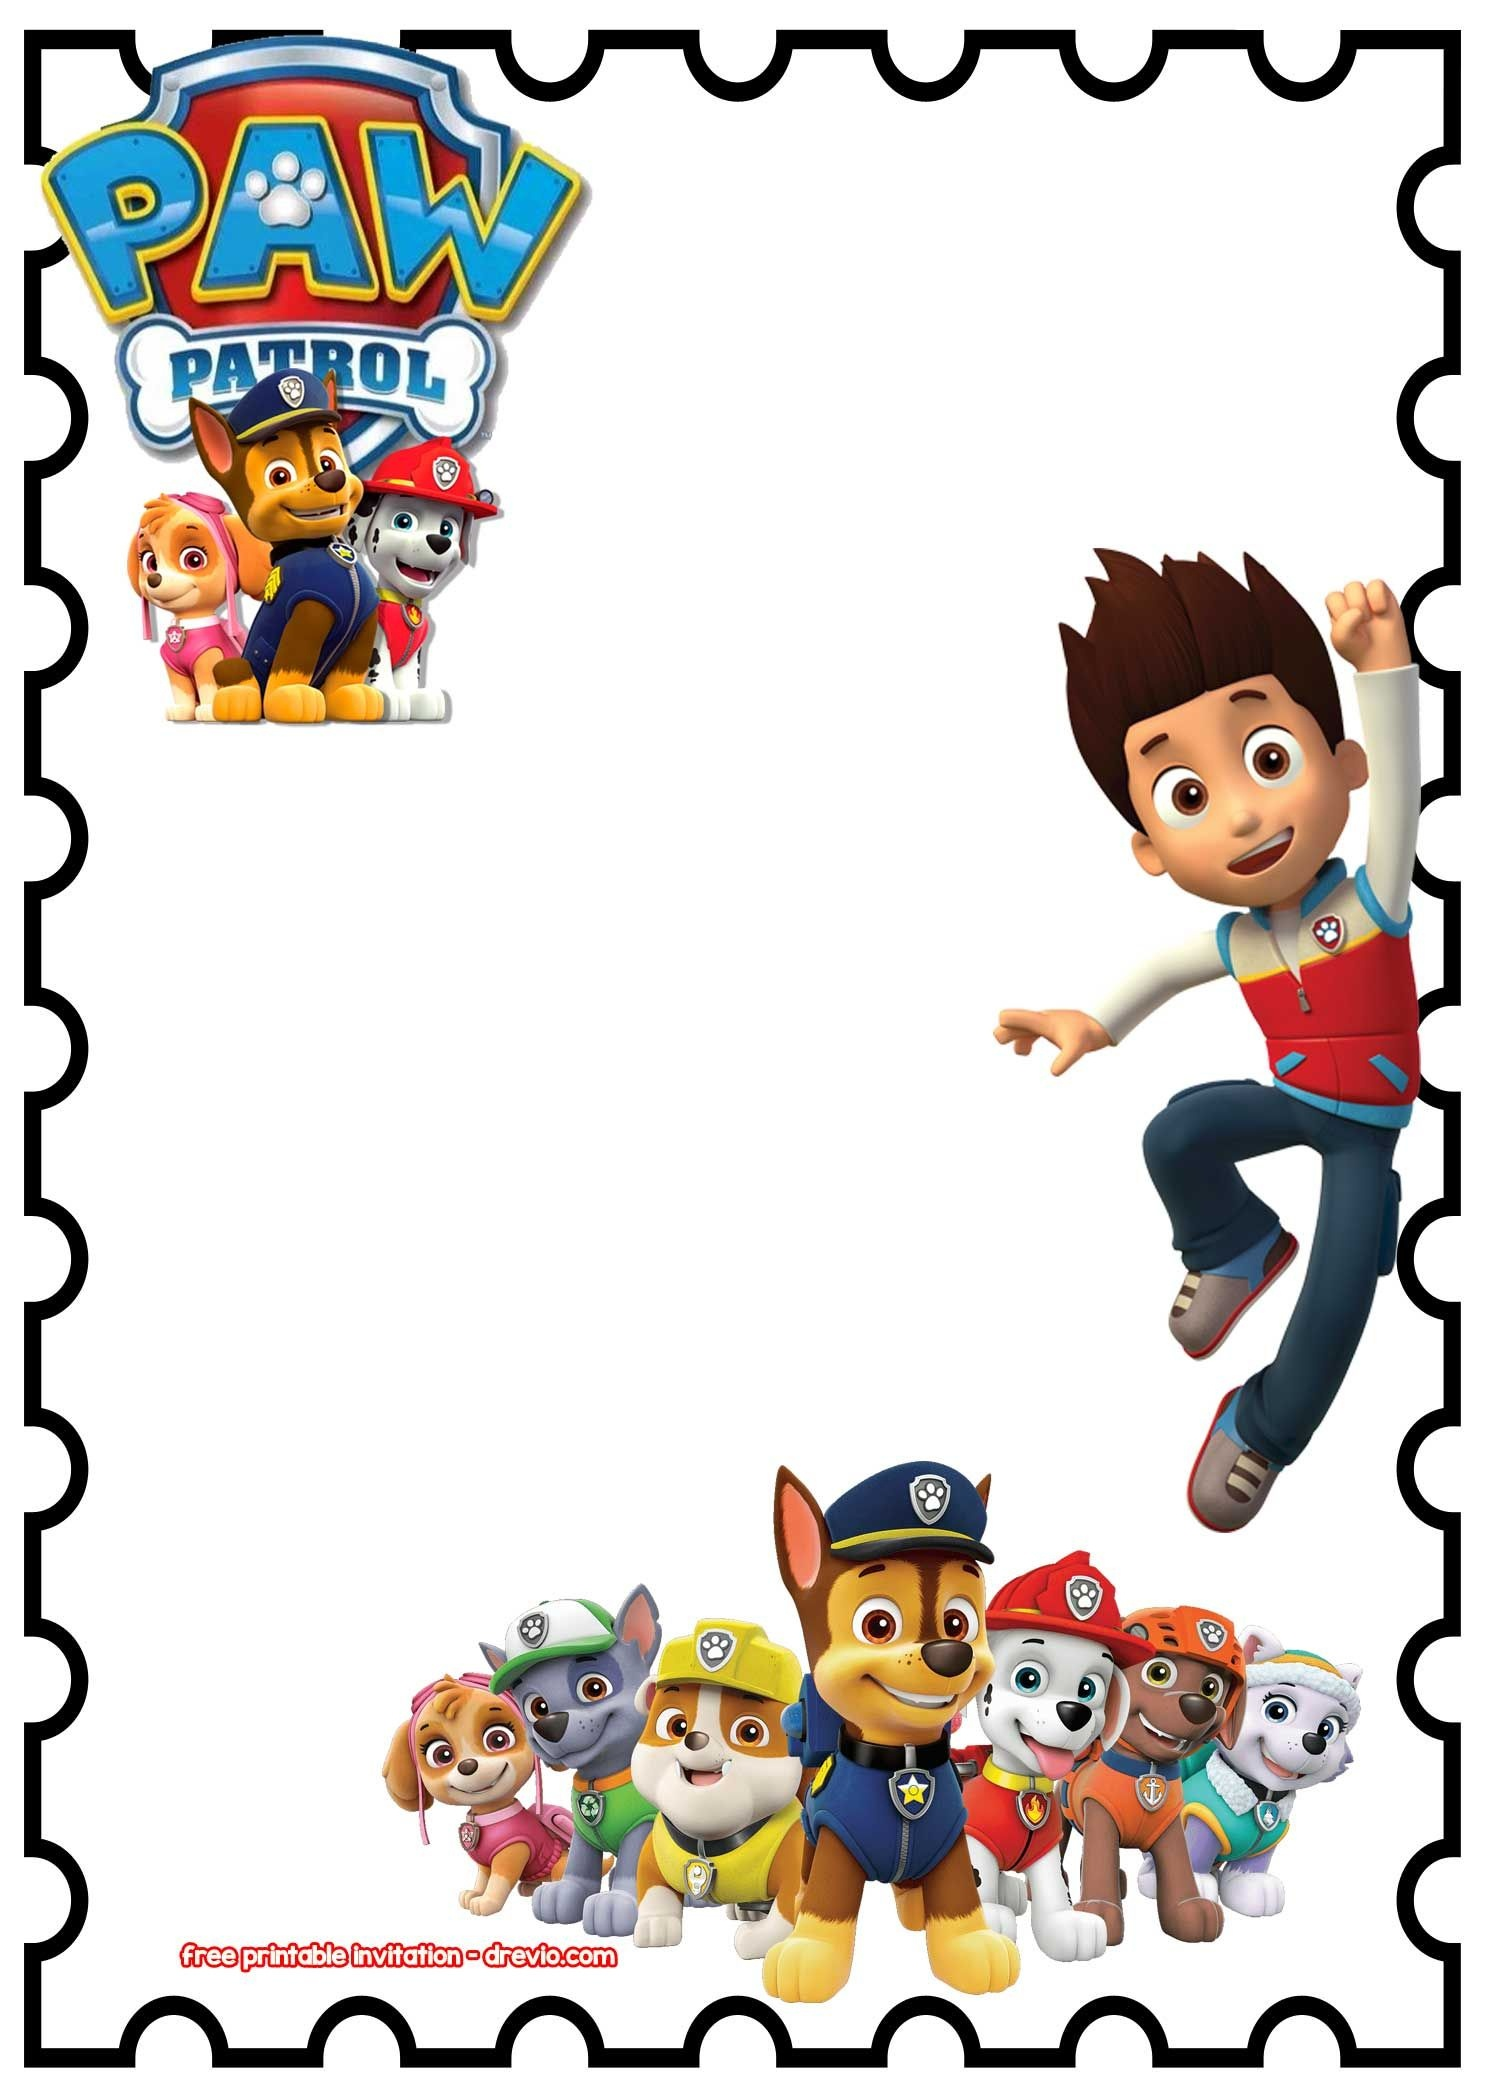 Free Printable Paw Patrol Birthday Invitation Chalkboard Psd - Free Printable Paw Patrol Invitations